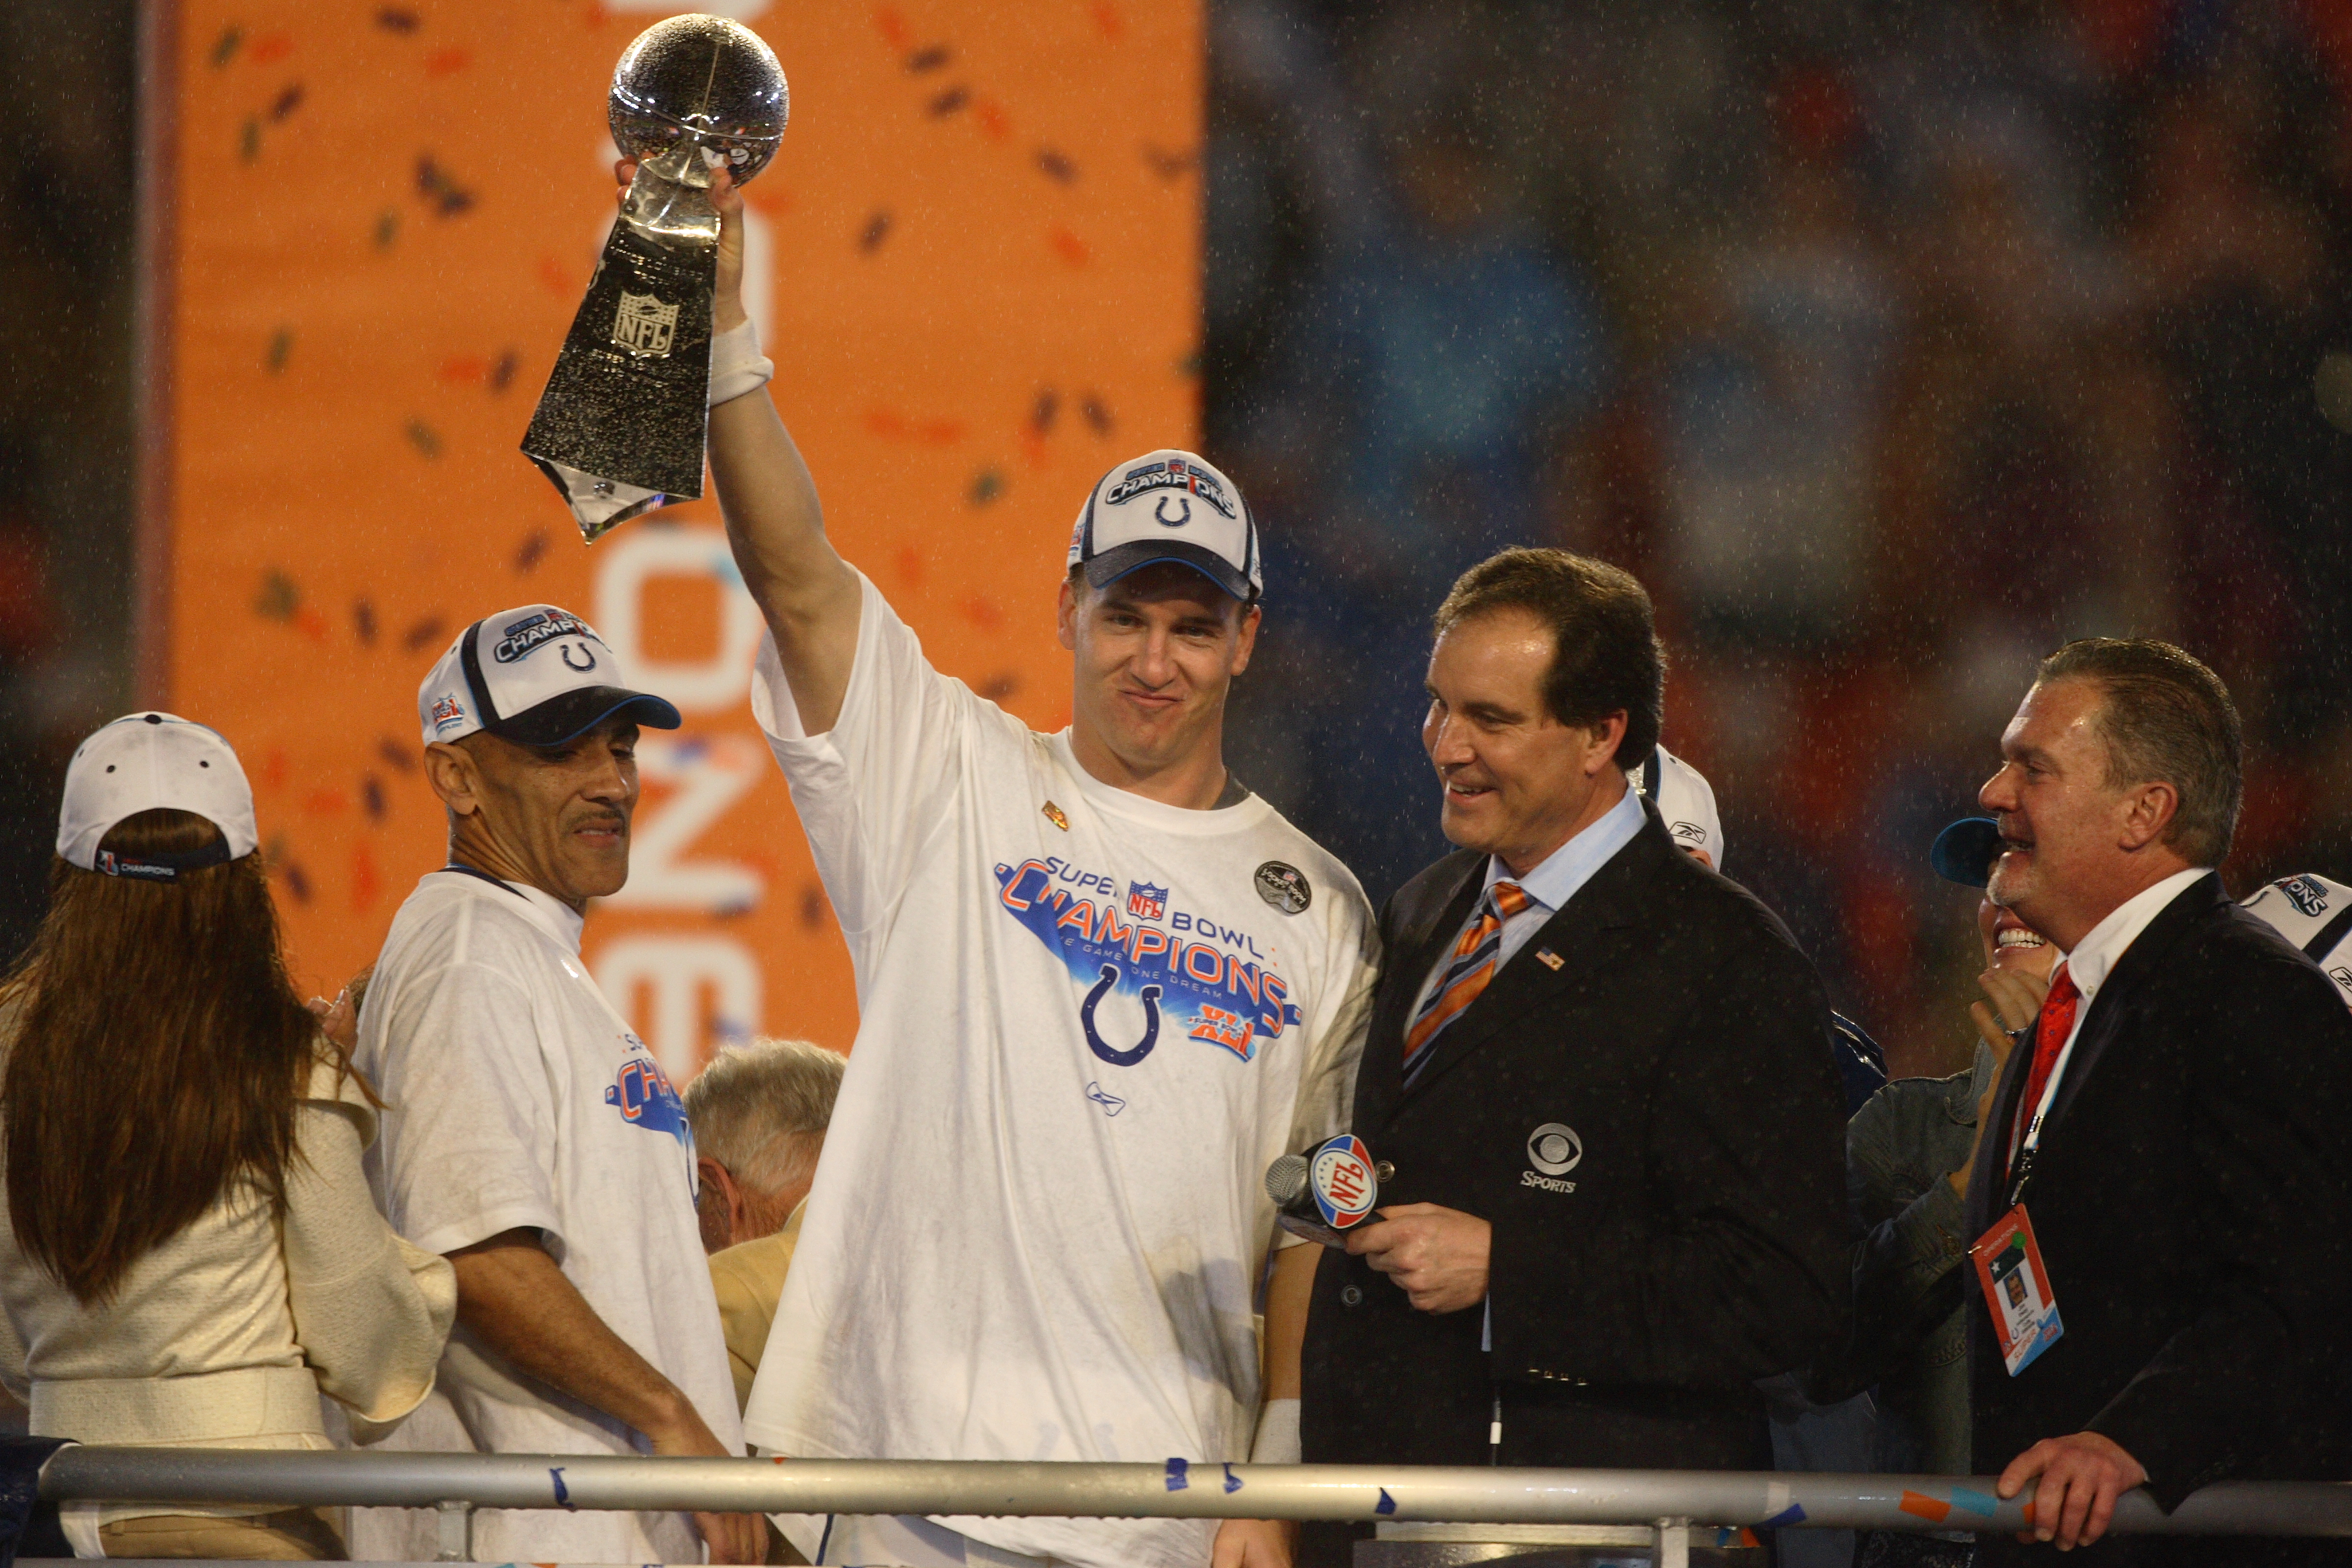 407b3510c Peyton Manning earned his first championship when he led the Indianapolis  Colts over the Chicago Bears in Super Bowl XLI. He was also named the Super  Bowl ...